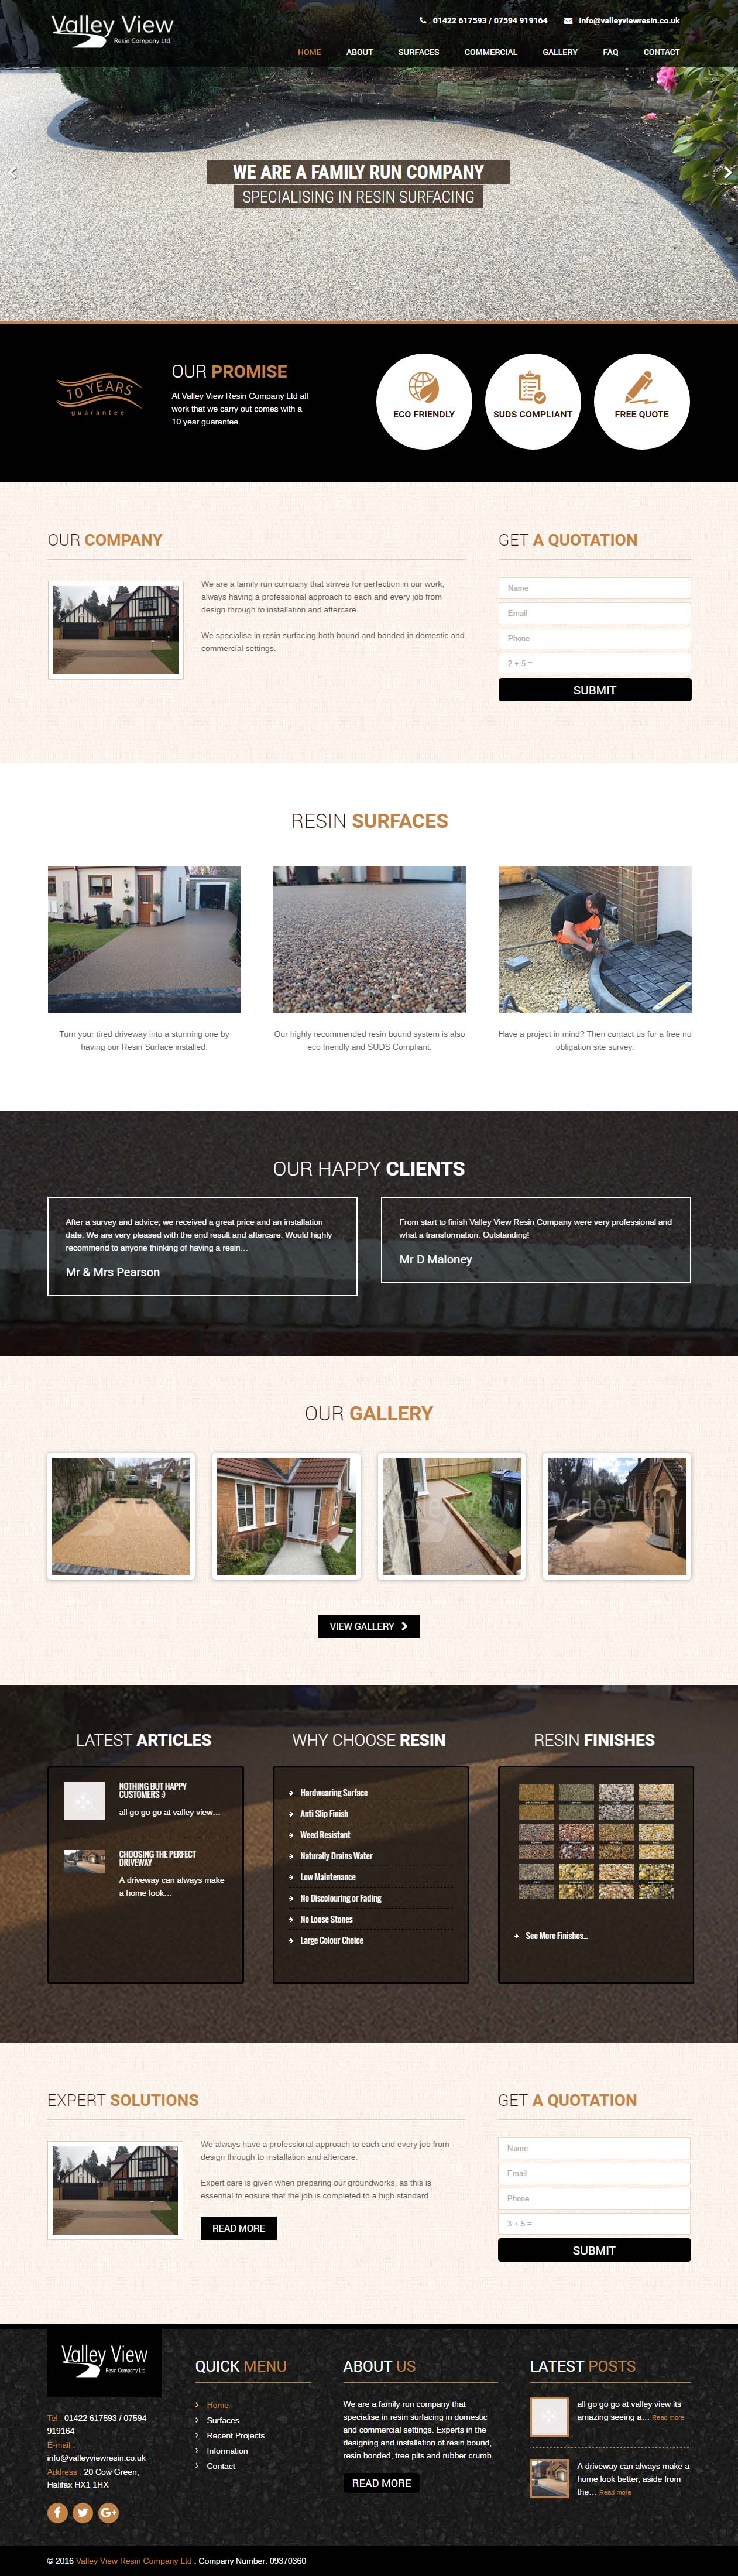 Valley View Resin Company Website